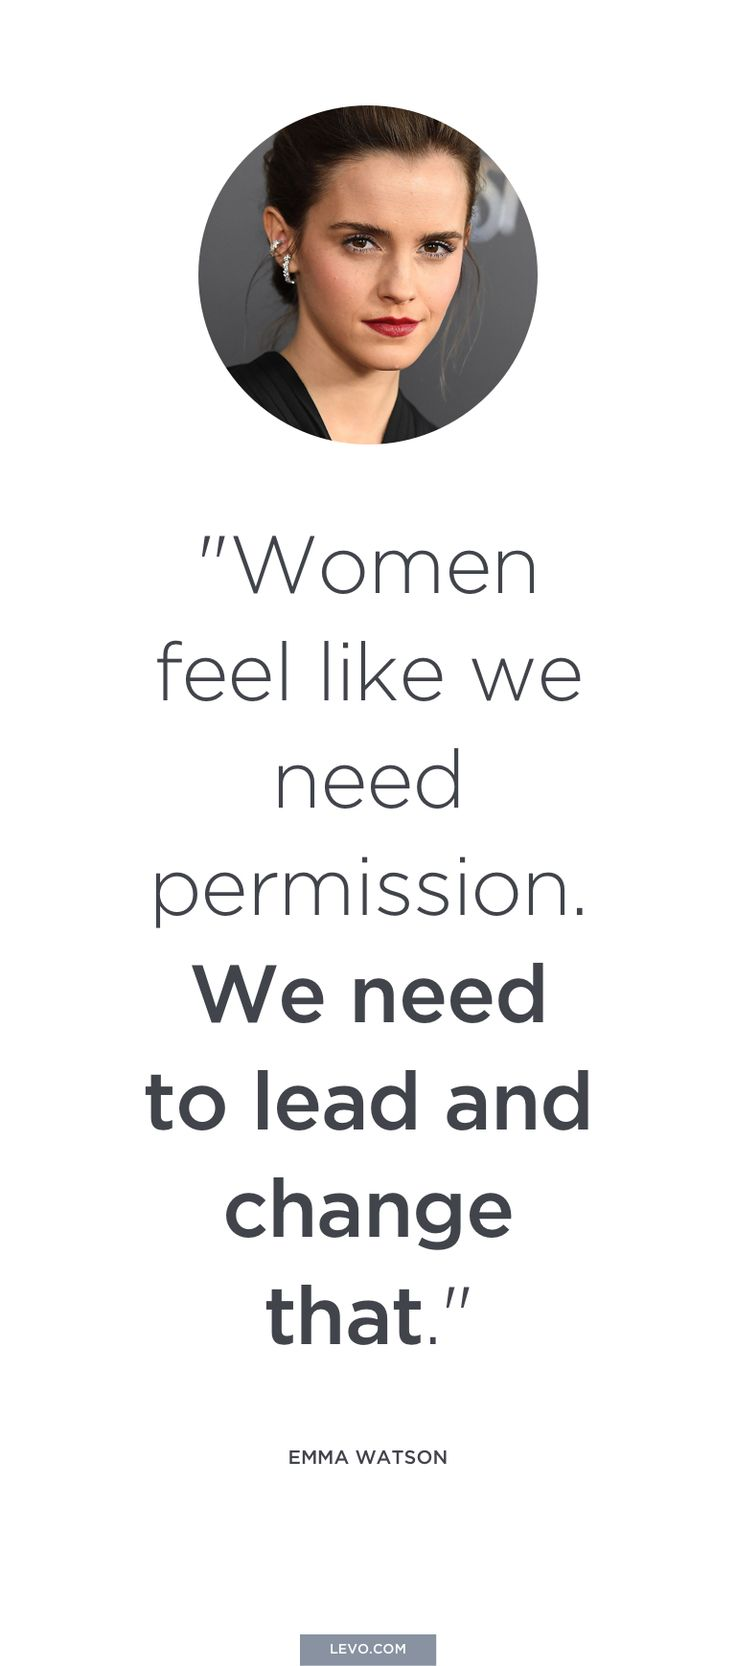 Emma Watson - Quotes to Inspire you to #Ask4More on Equal Pay Day - www.levo.com/ask4more